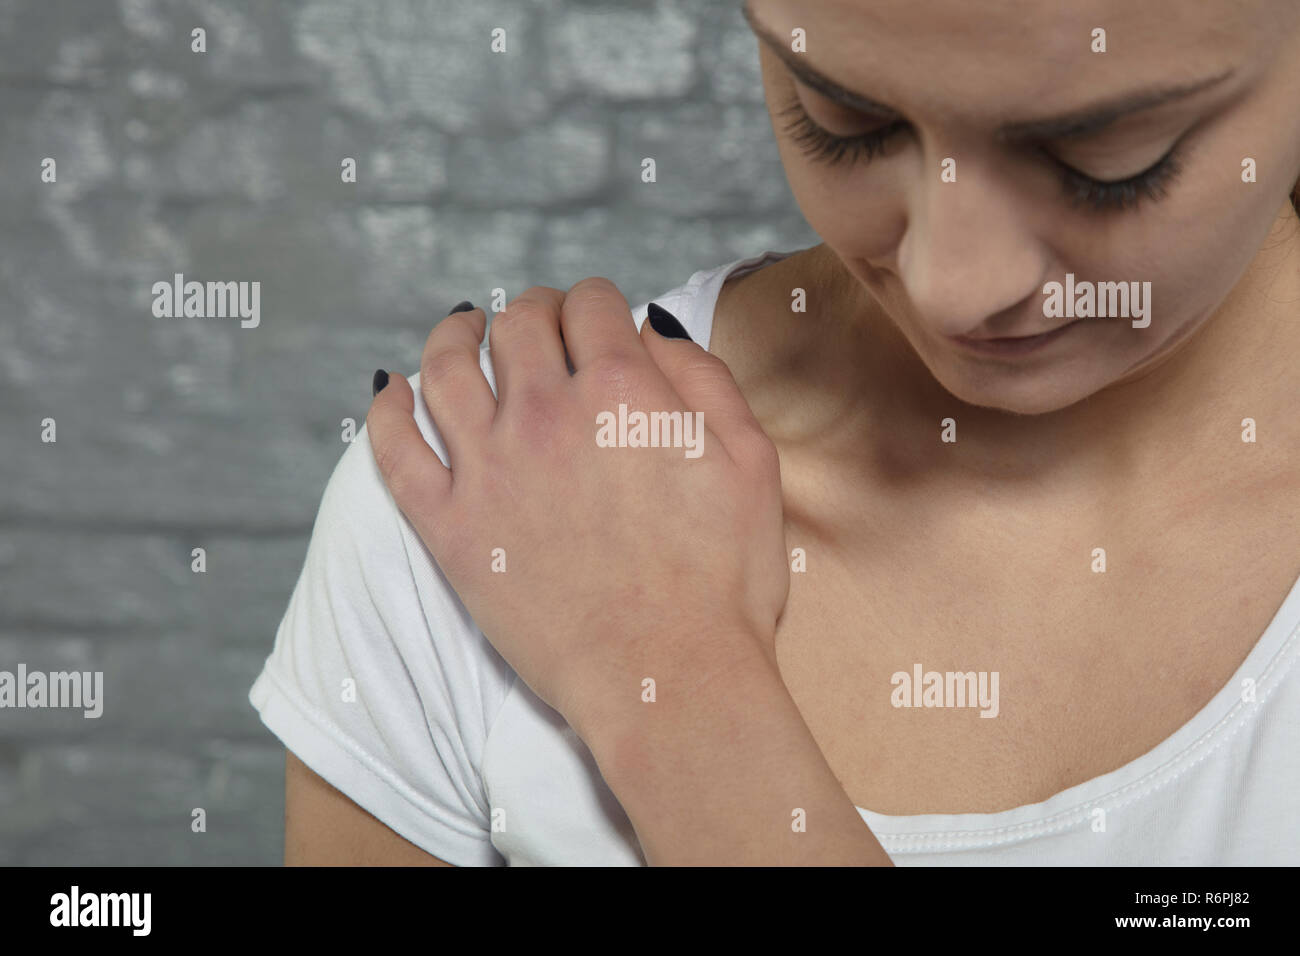 woman is struggling with shoulder pain, close up - Stock Image